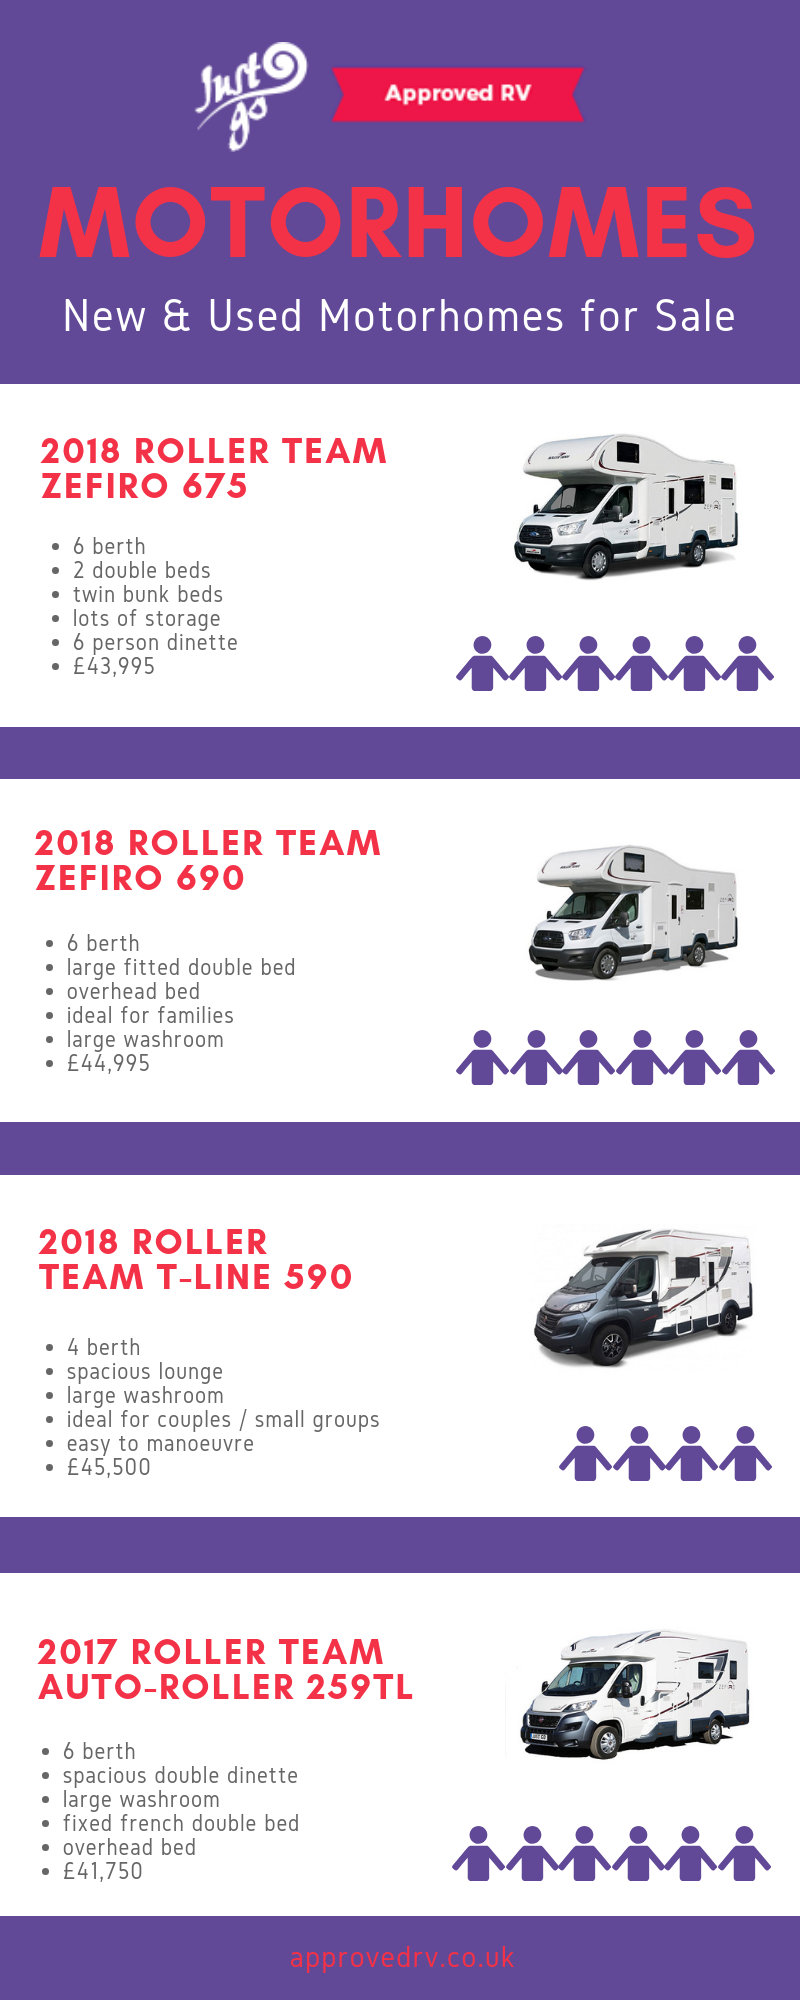 Types of Motorhomes for Sale